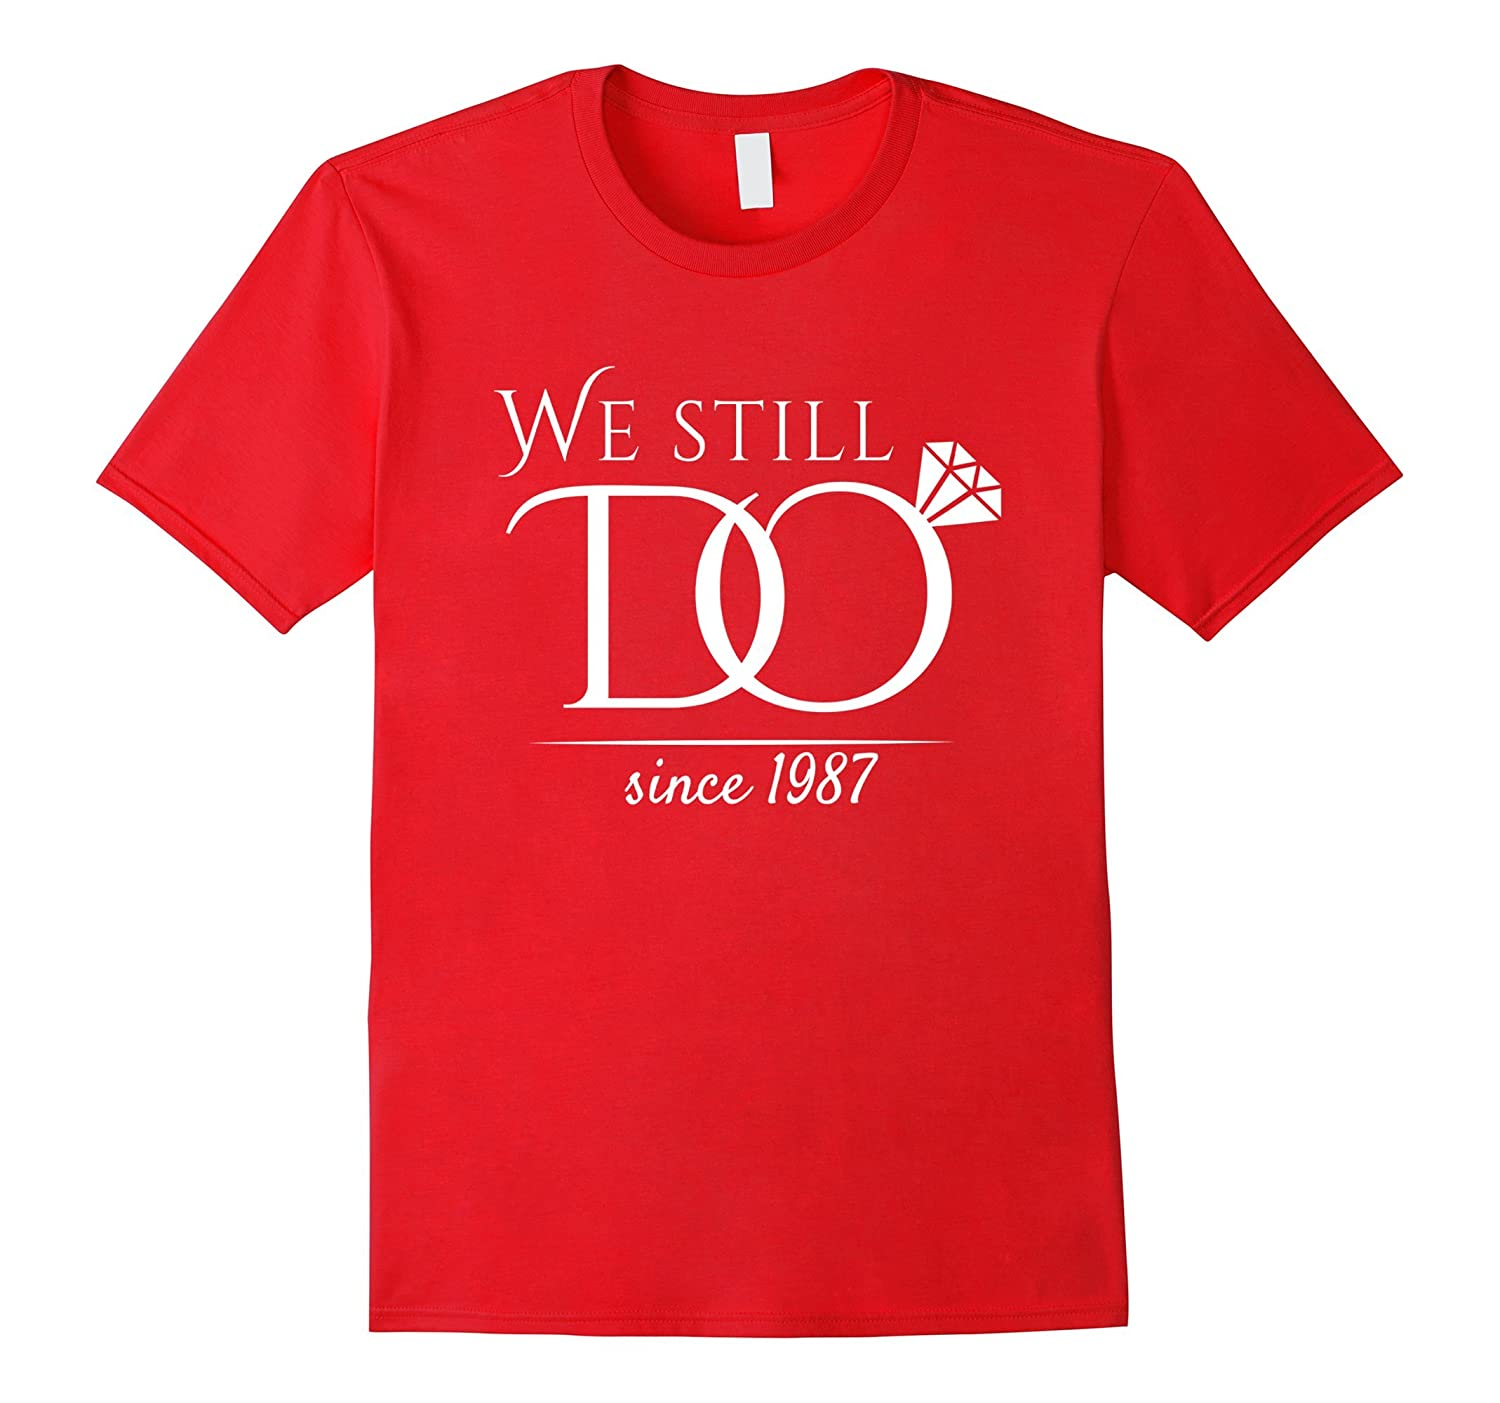 30th Wedding Anniversary T-Shirt Funny For Married In 1987 W-TJ